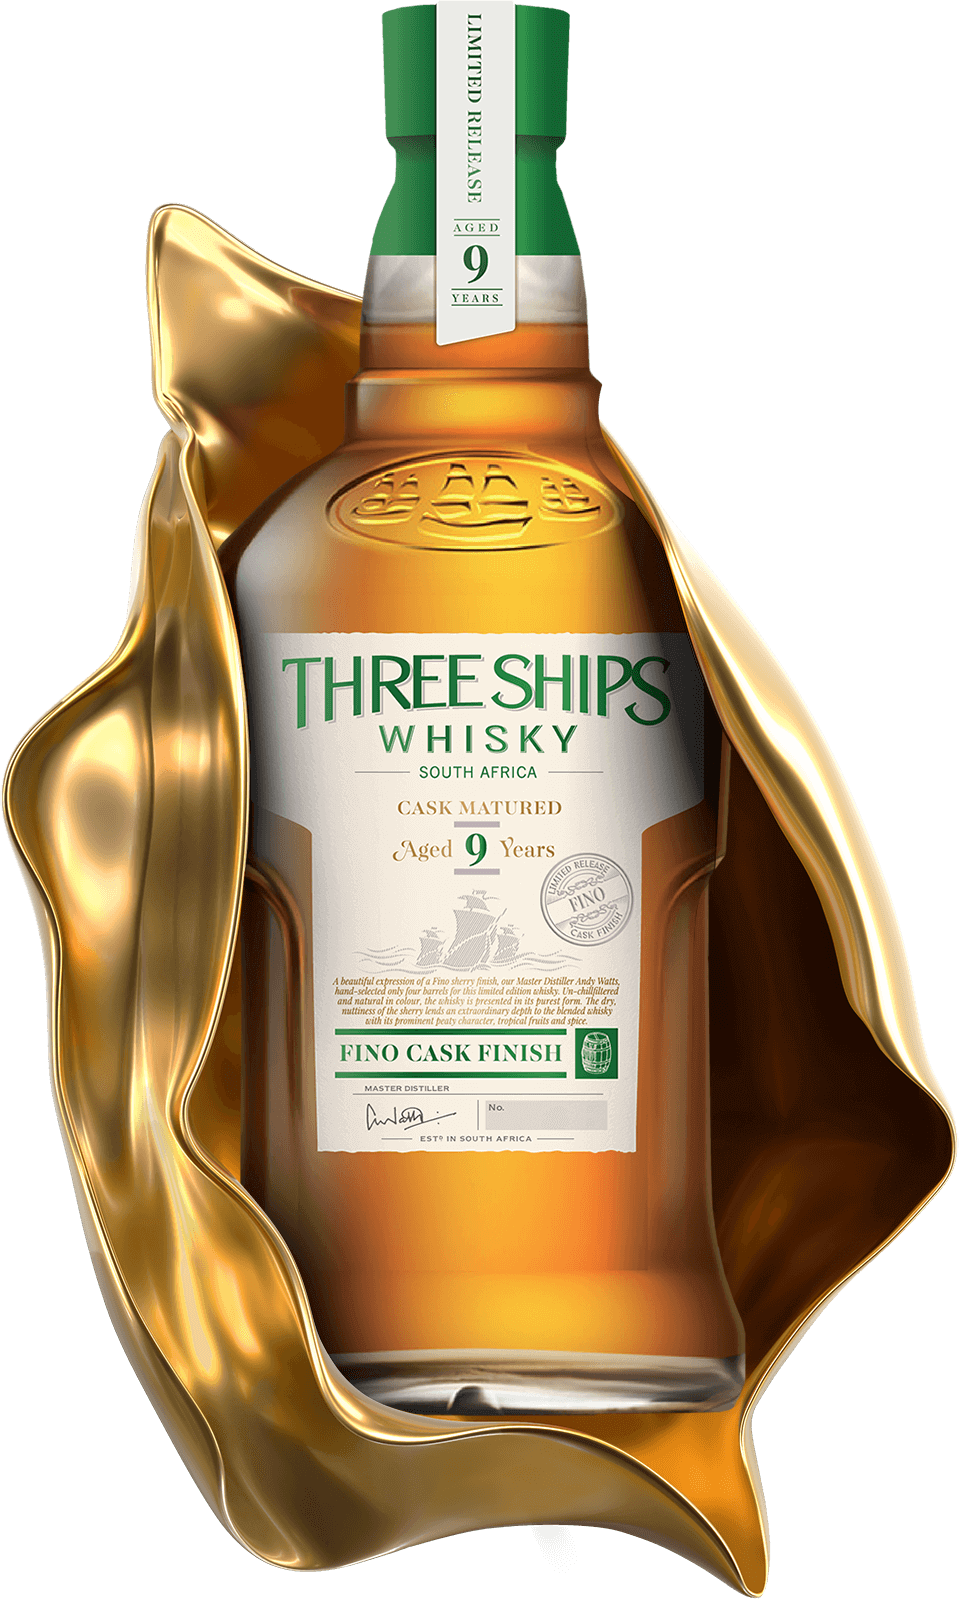 THREE SHIPS WHISKY 9 YEAR OLD BLEND FINO CASK FINISH